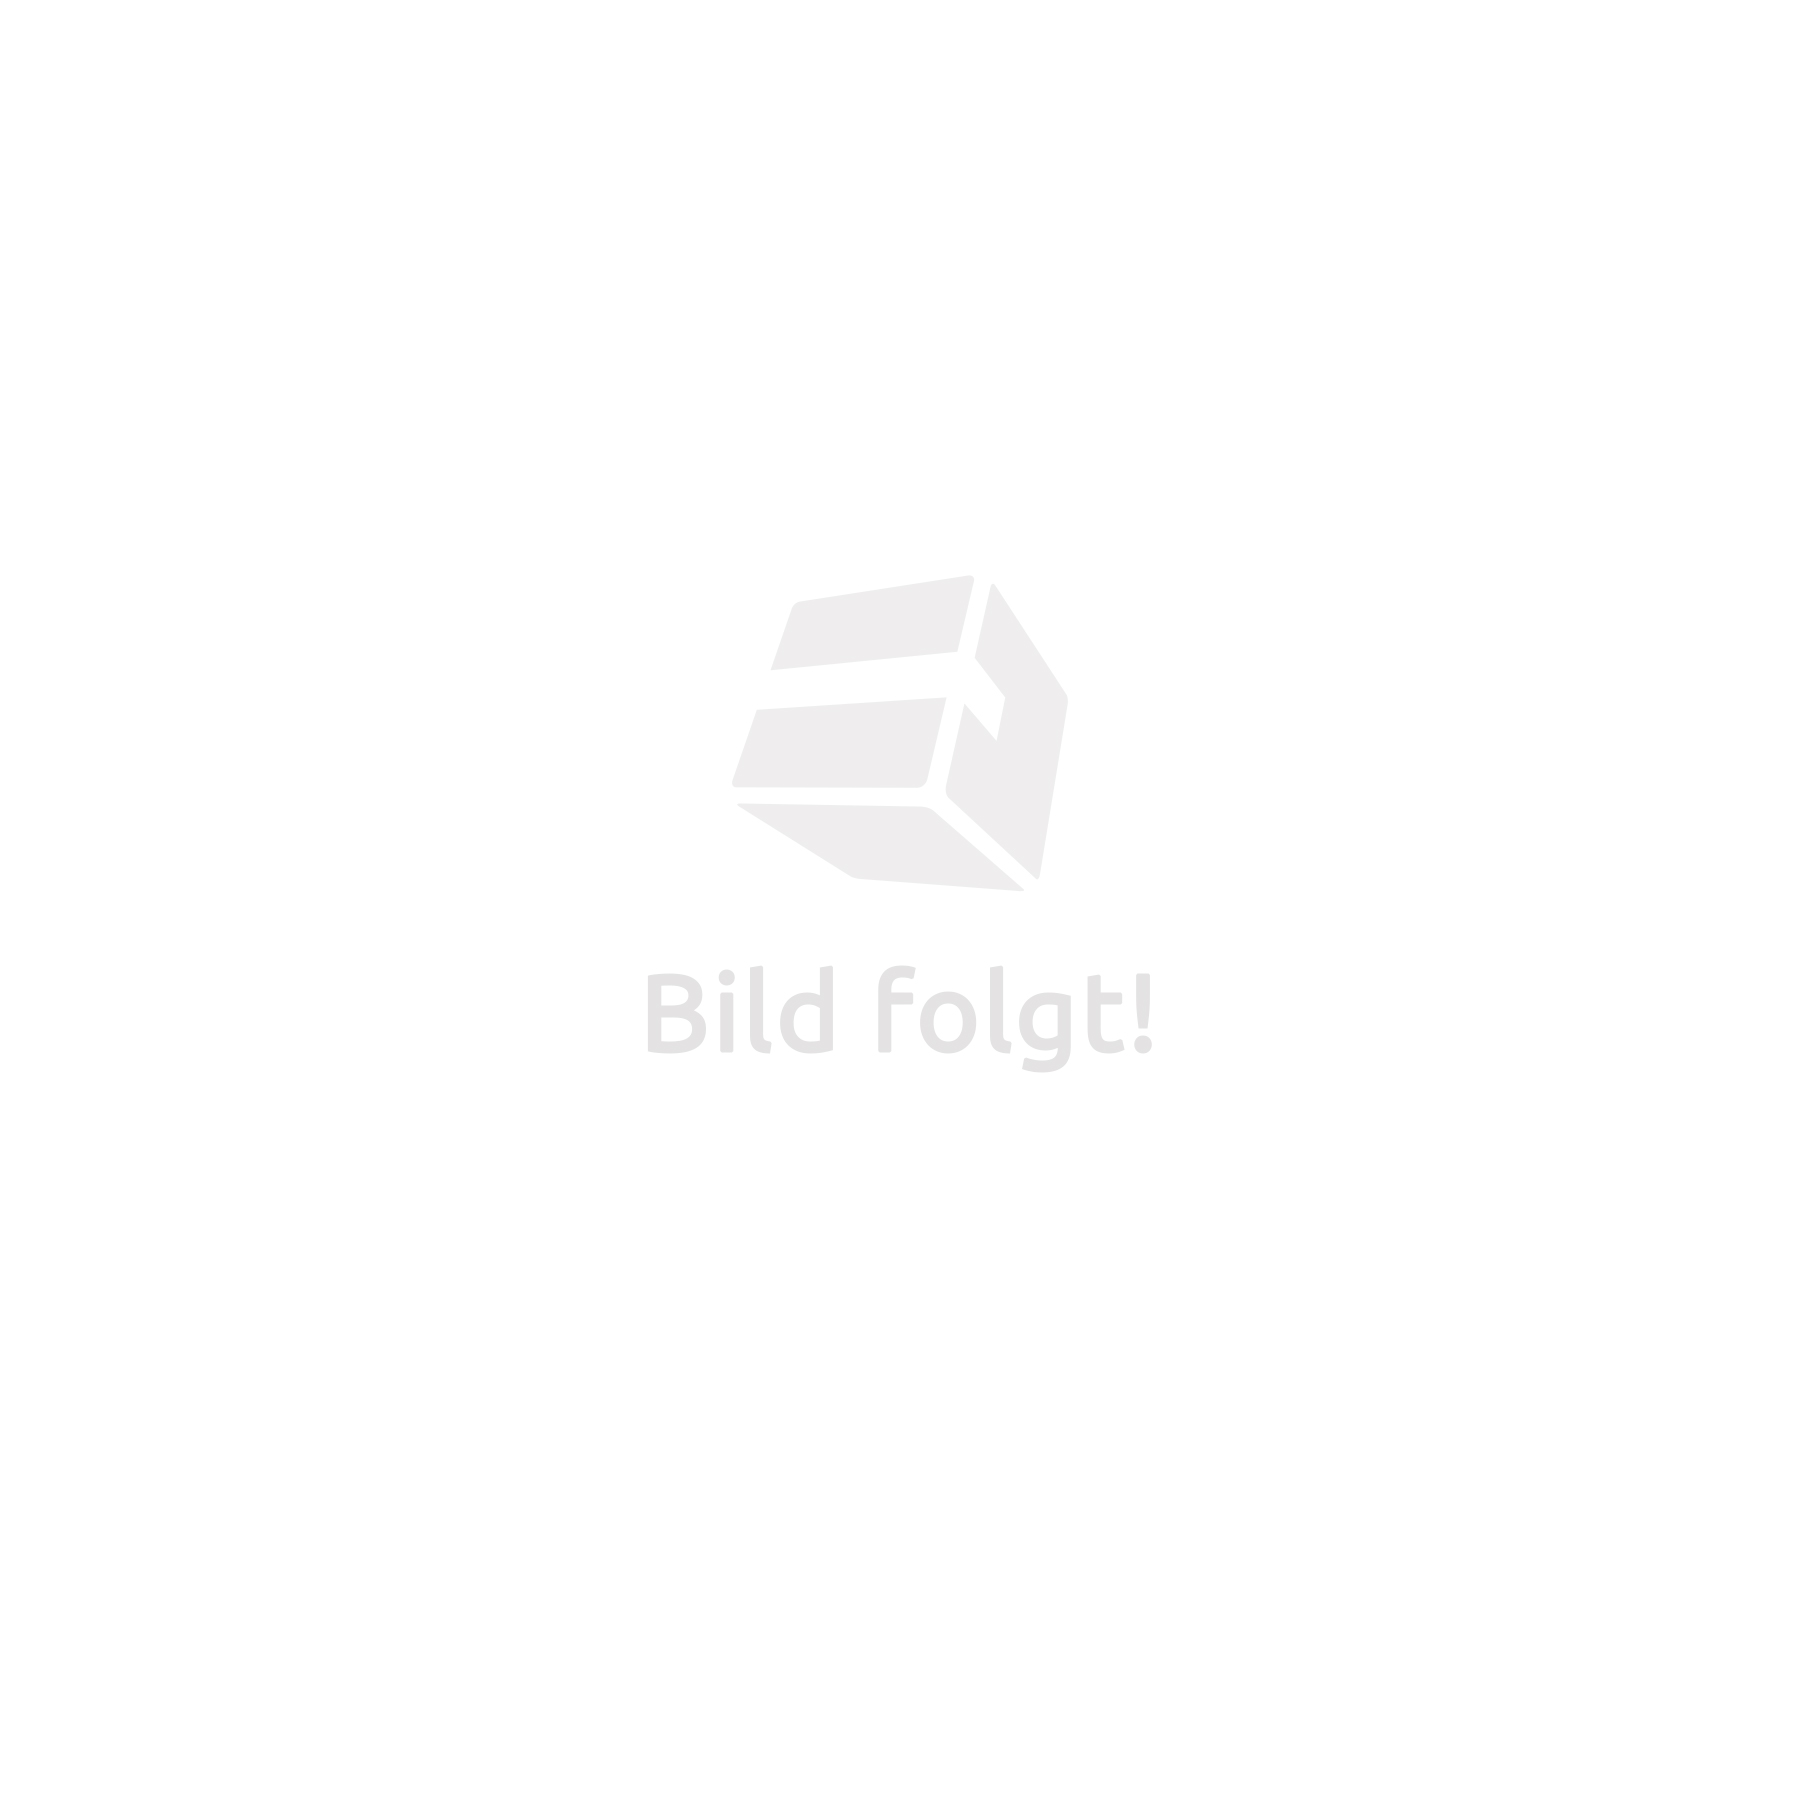 Oil drain plug repair kit